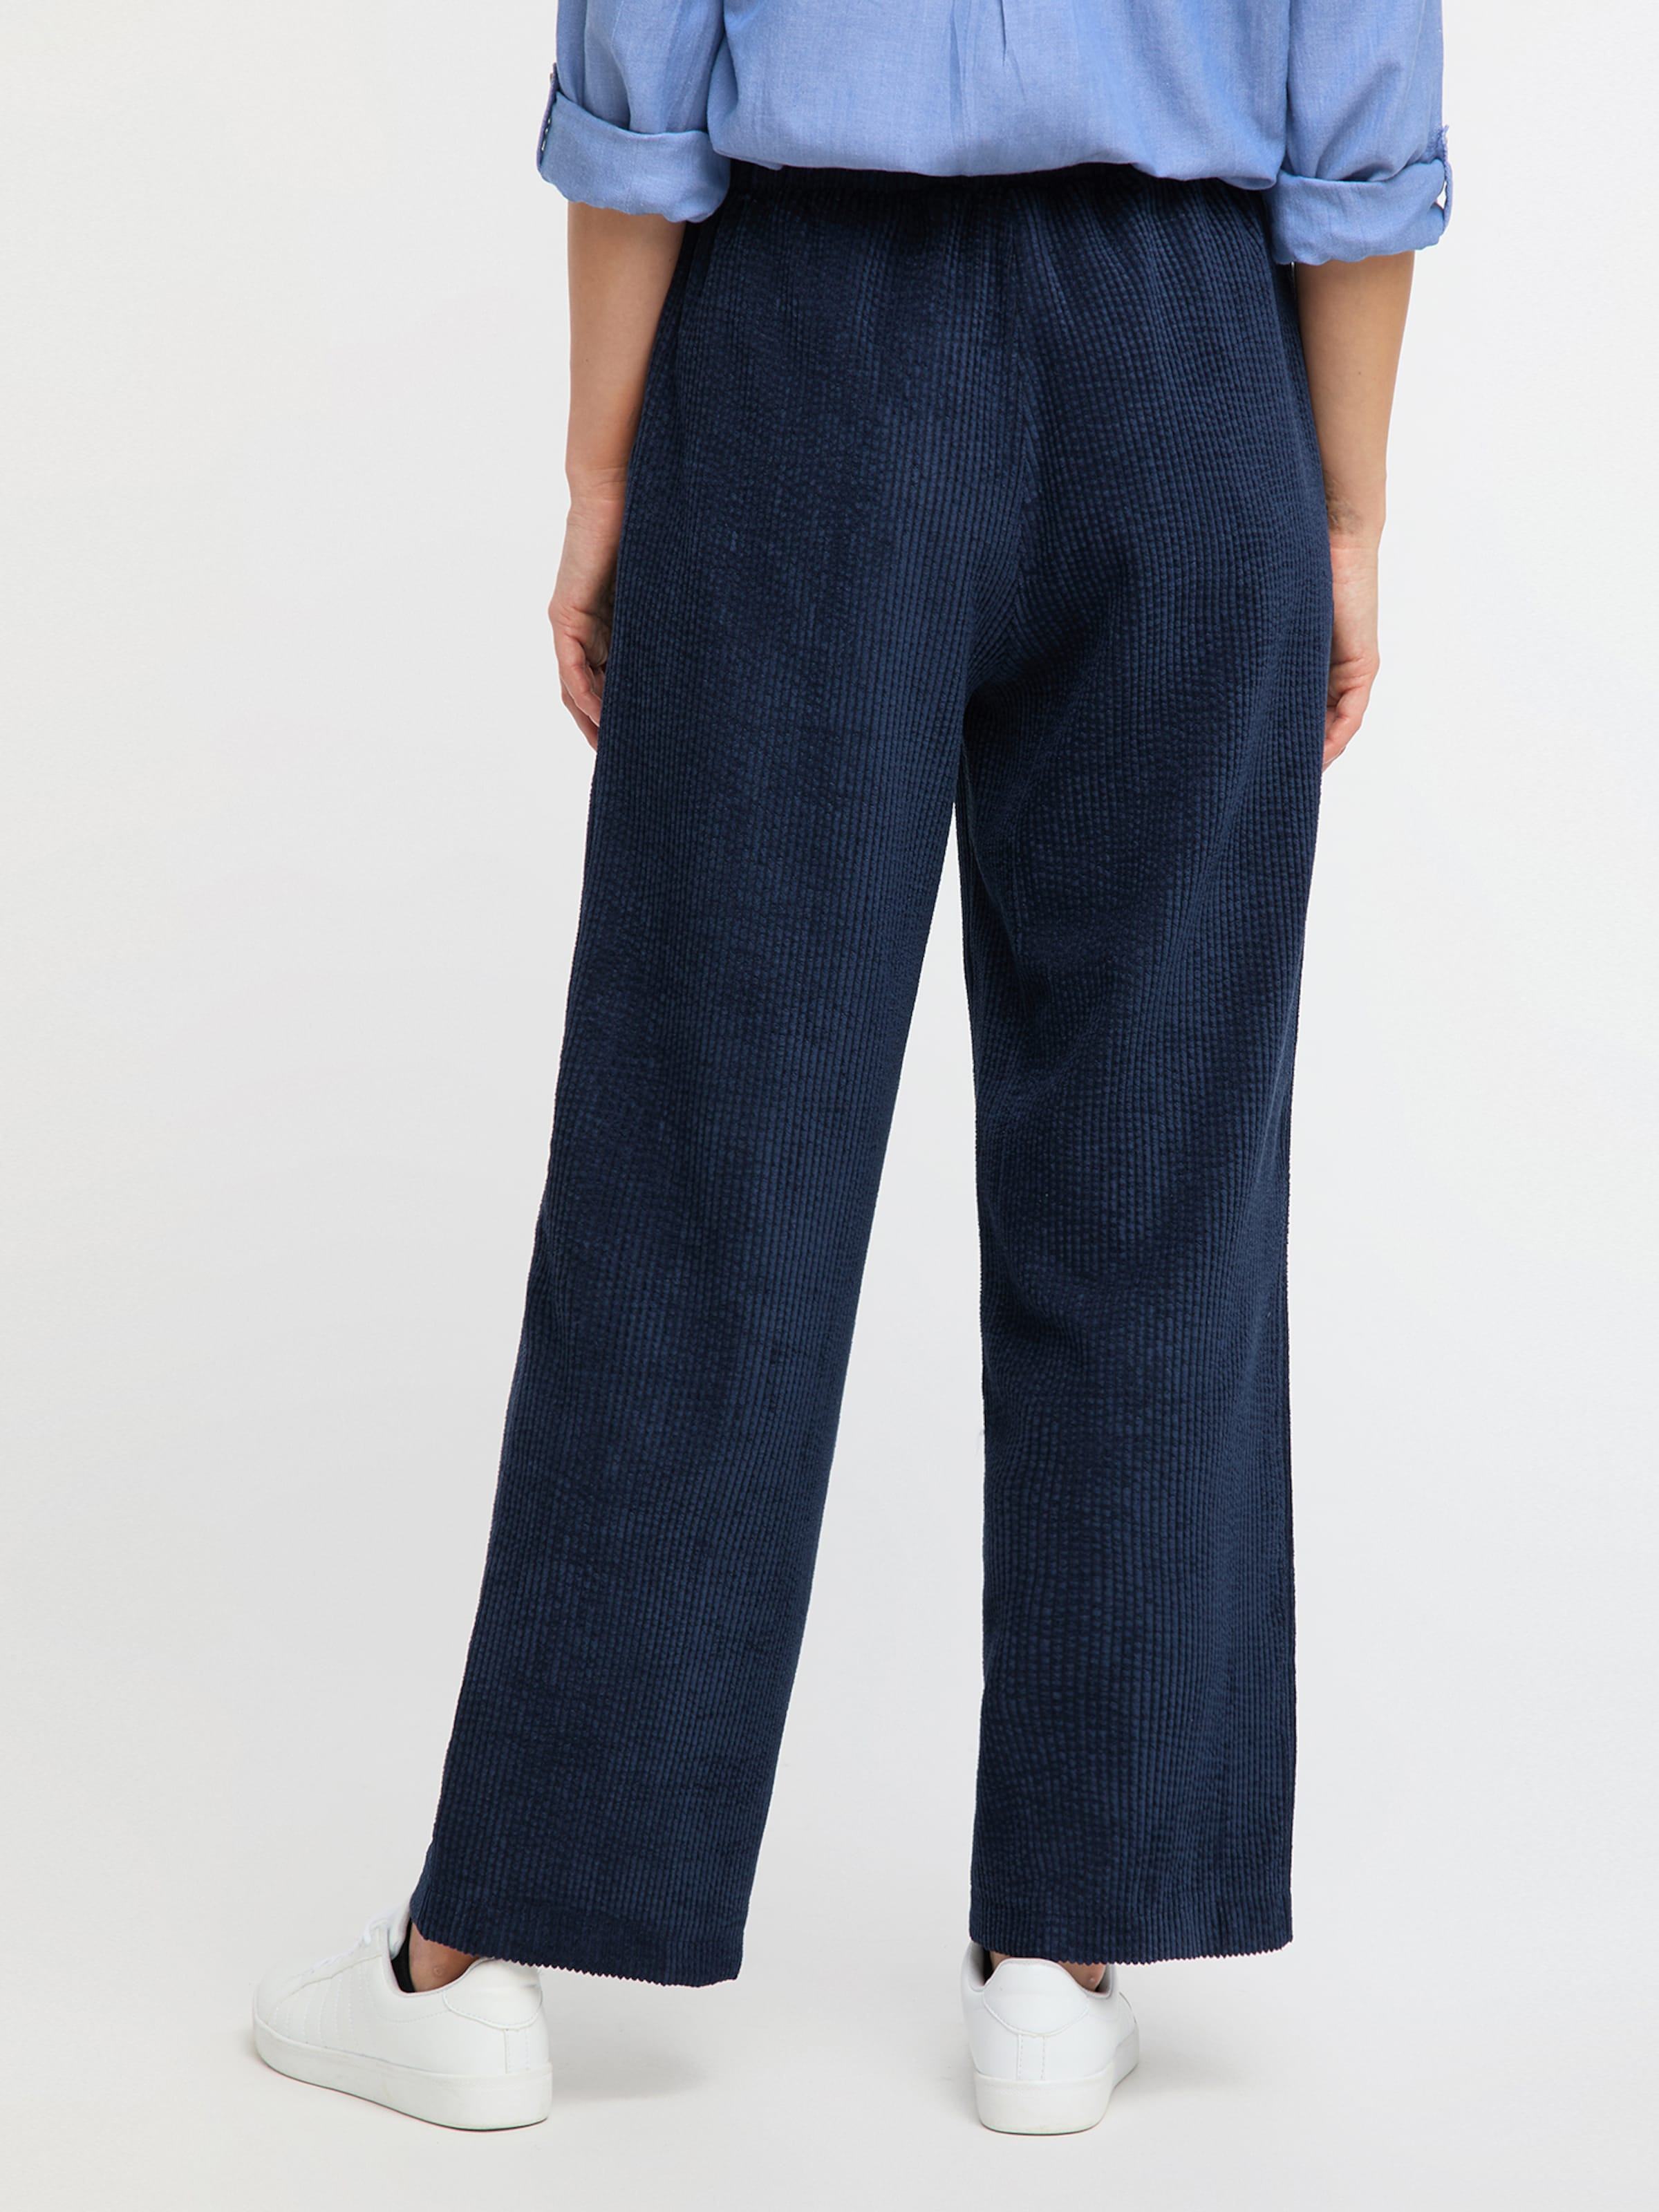 'sandriana' Nyc En Pantalon Fashion Bleu Broadway Foncé shtrCxdBQ